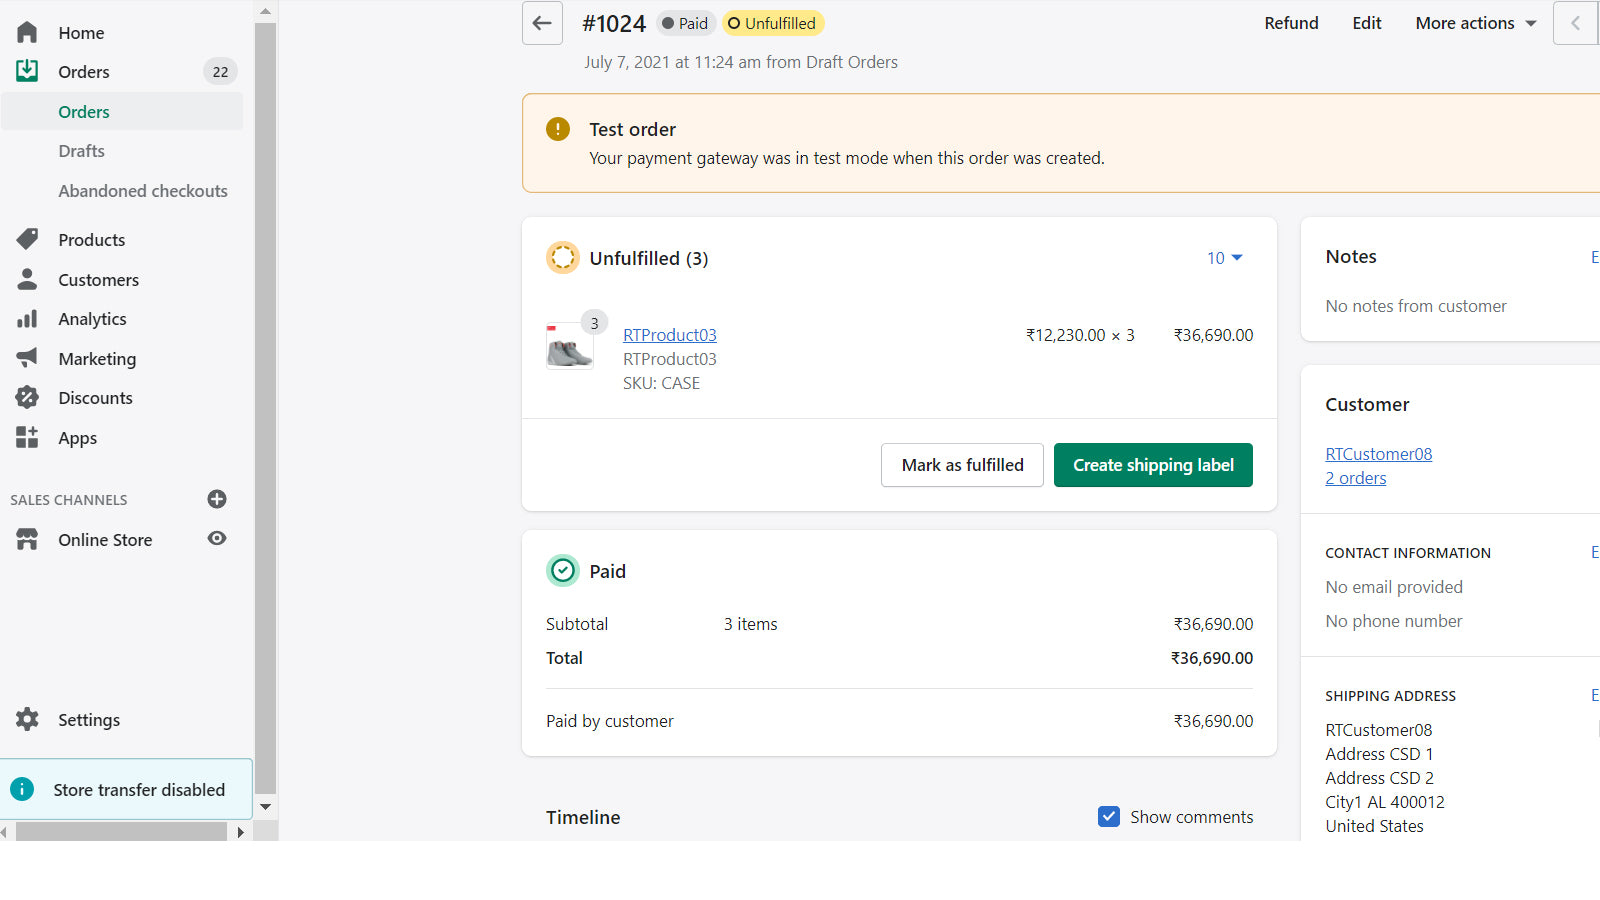 Order creation in Shopify with unfulfilled status